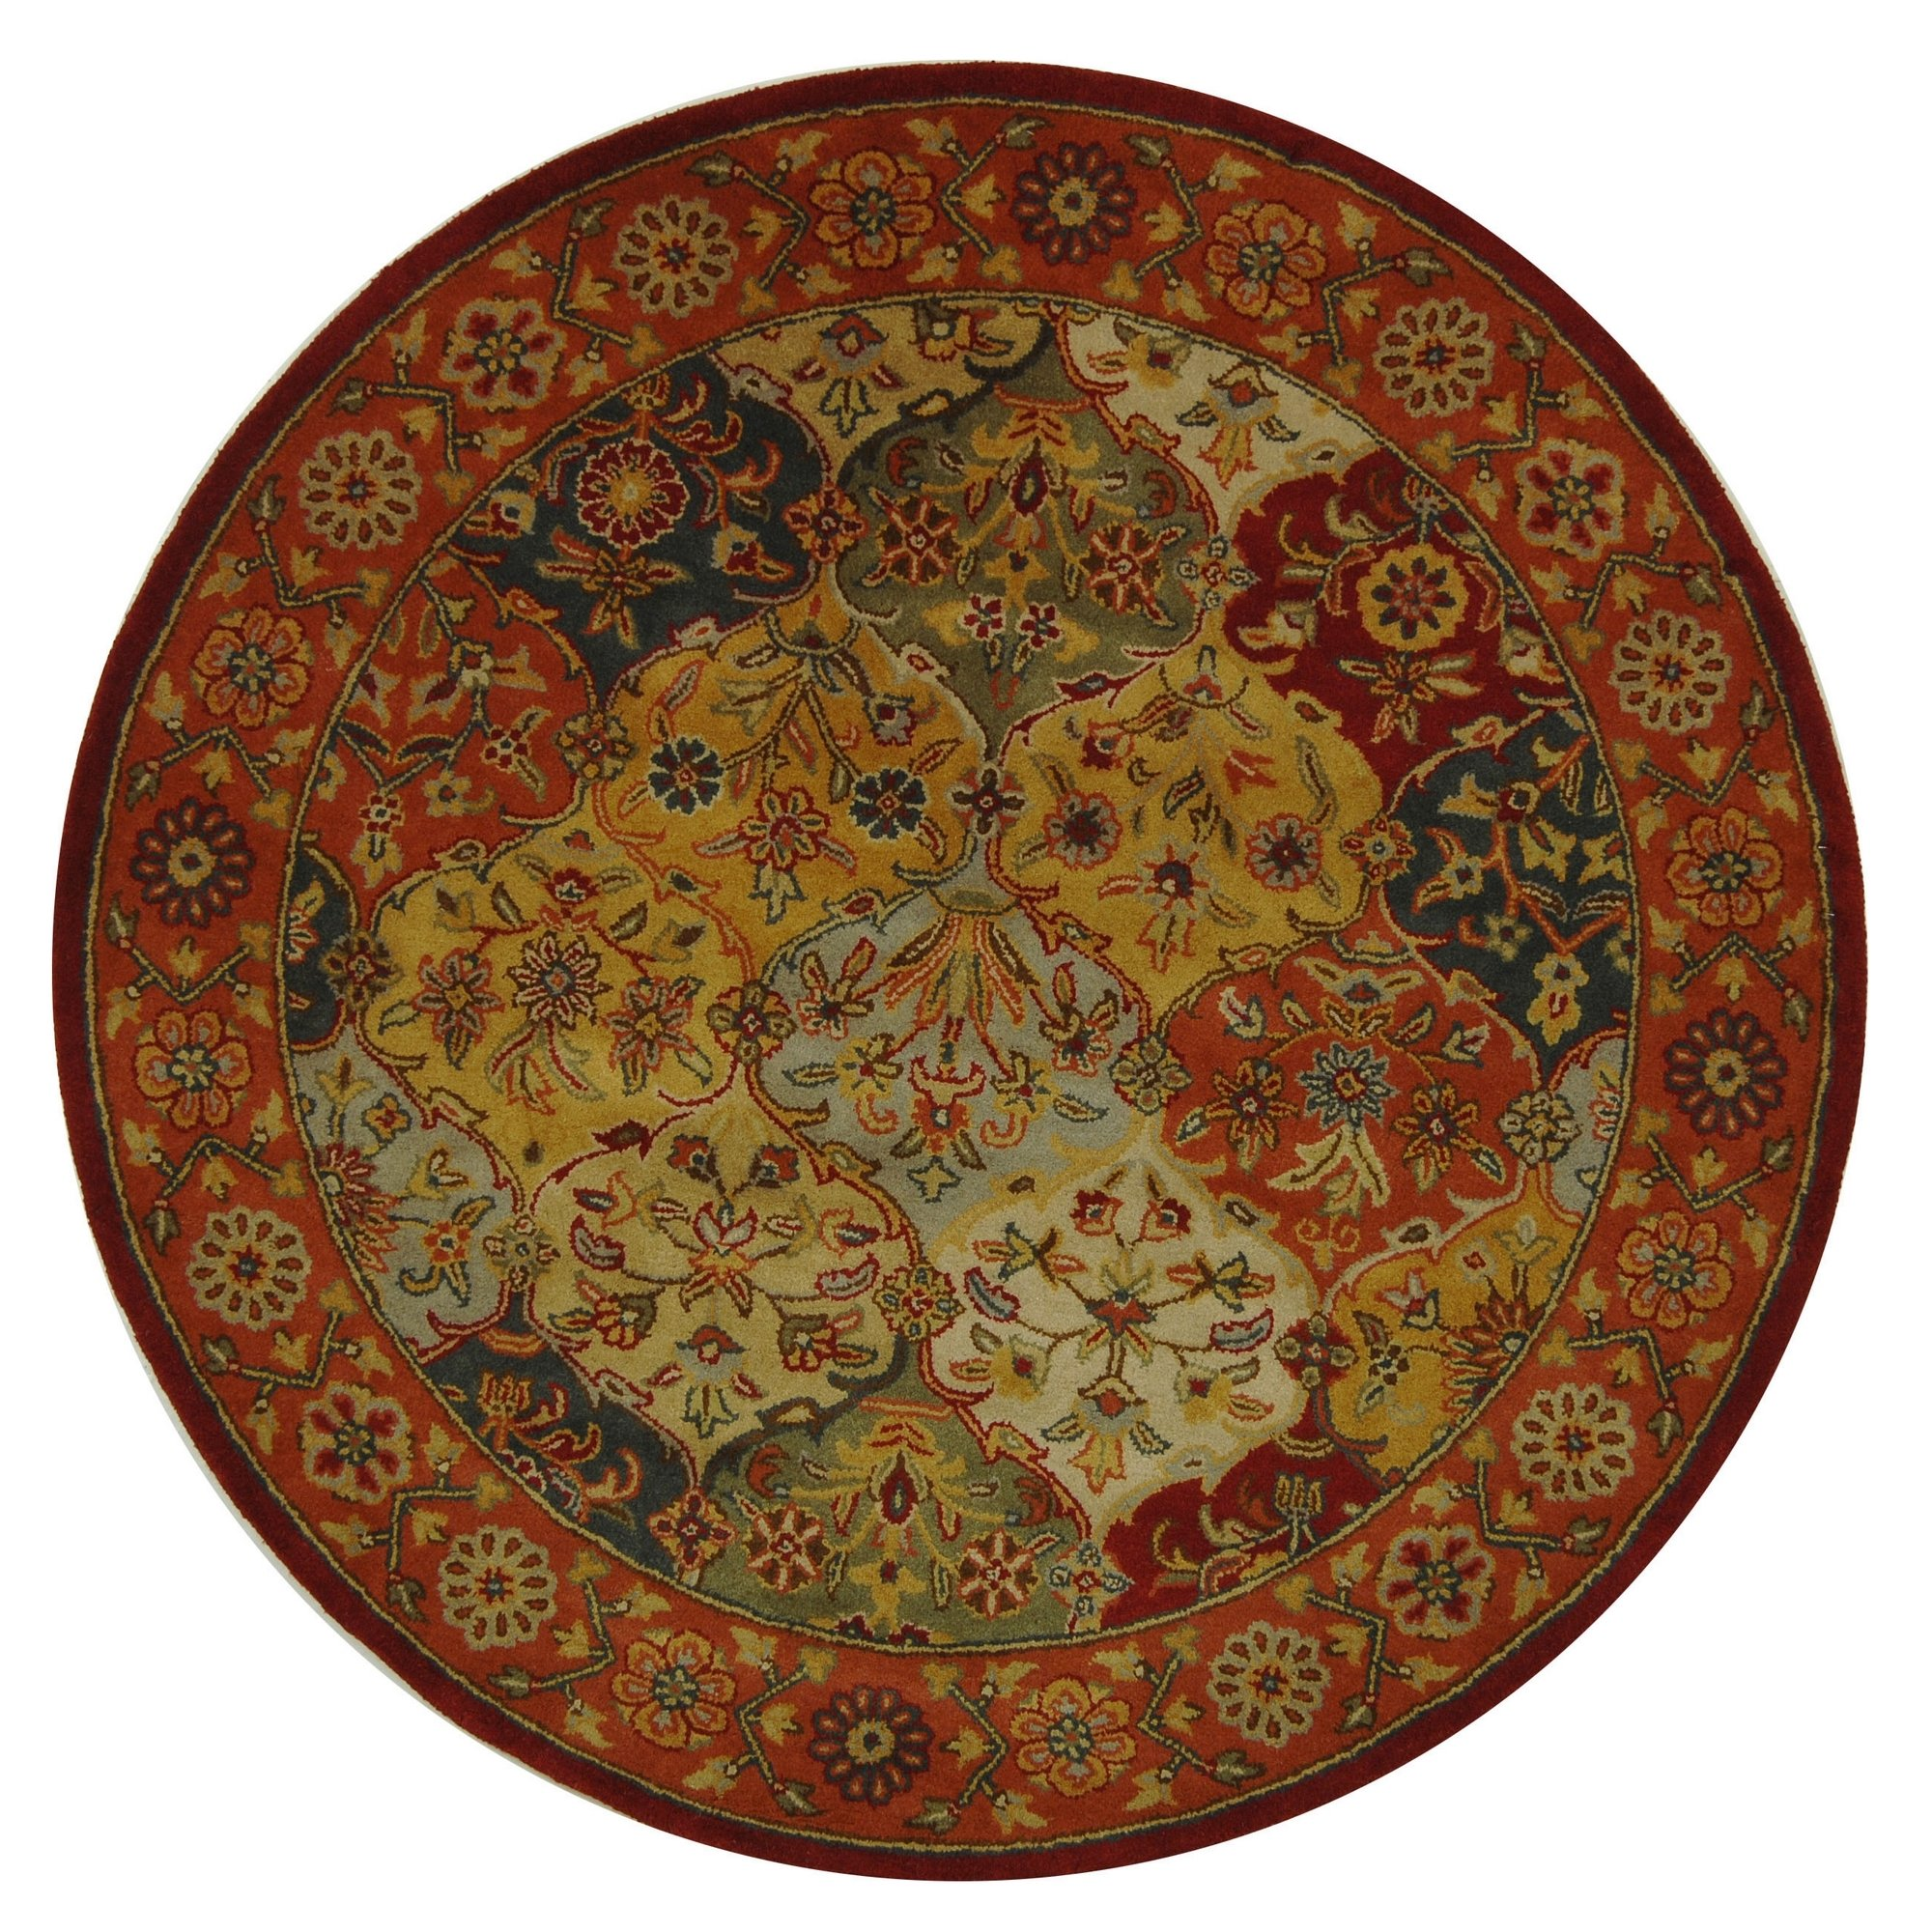 Safavieh Heritage Collection HG510B Handcrafted Traditional Oriental Multi and Red Wool Round Area Rug (6' Diameter) by Safavieh